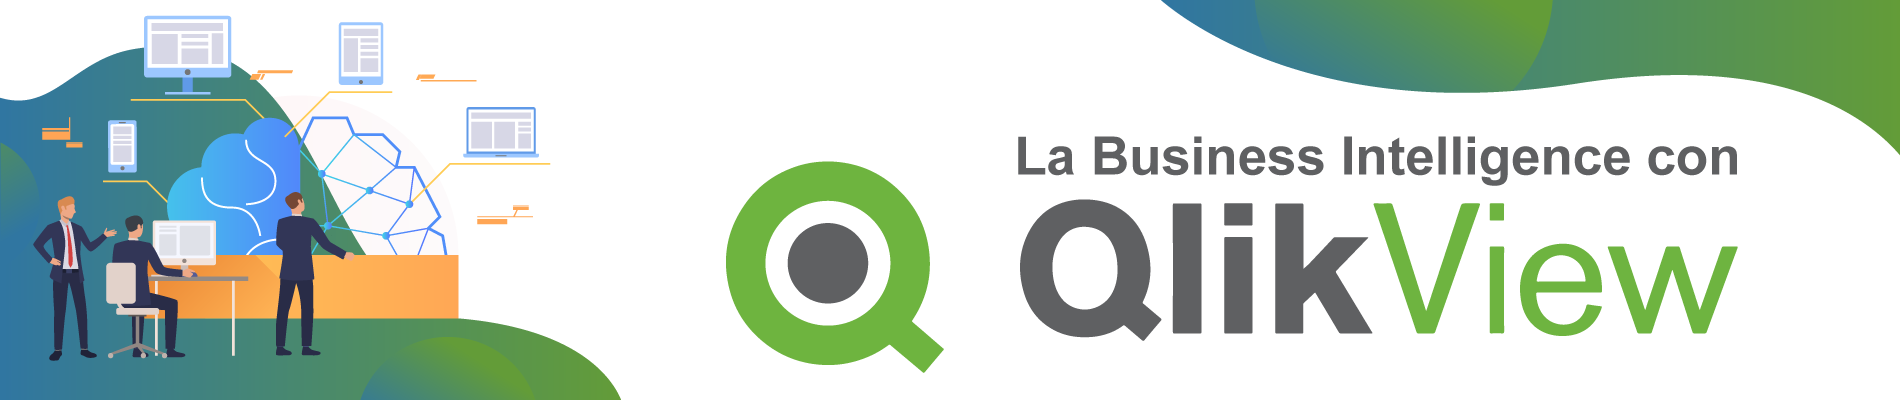 La Business Intelligence con QlikView